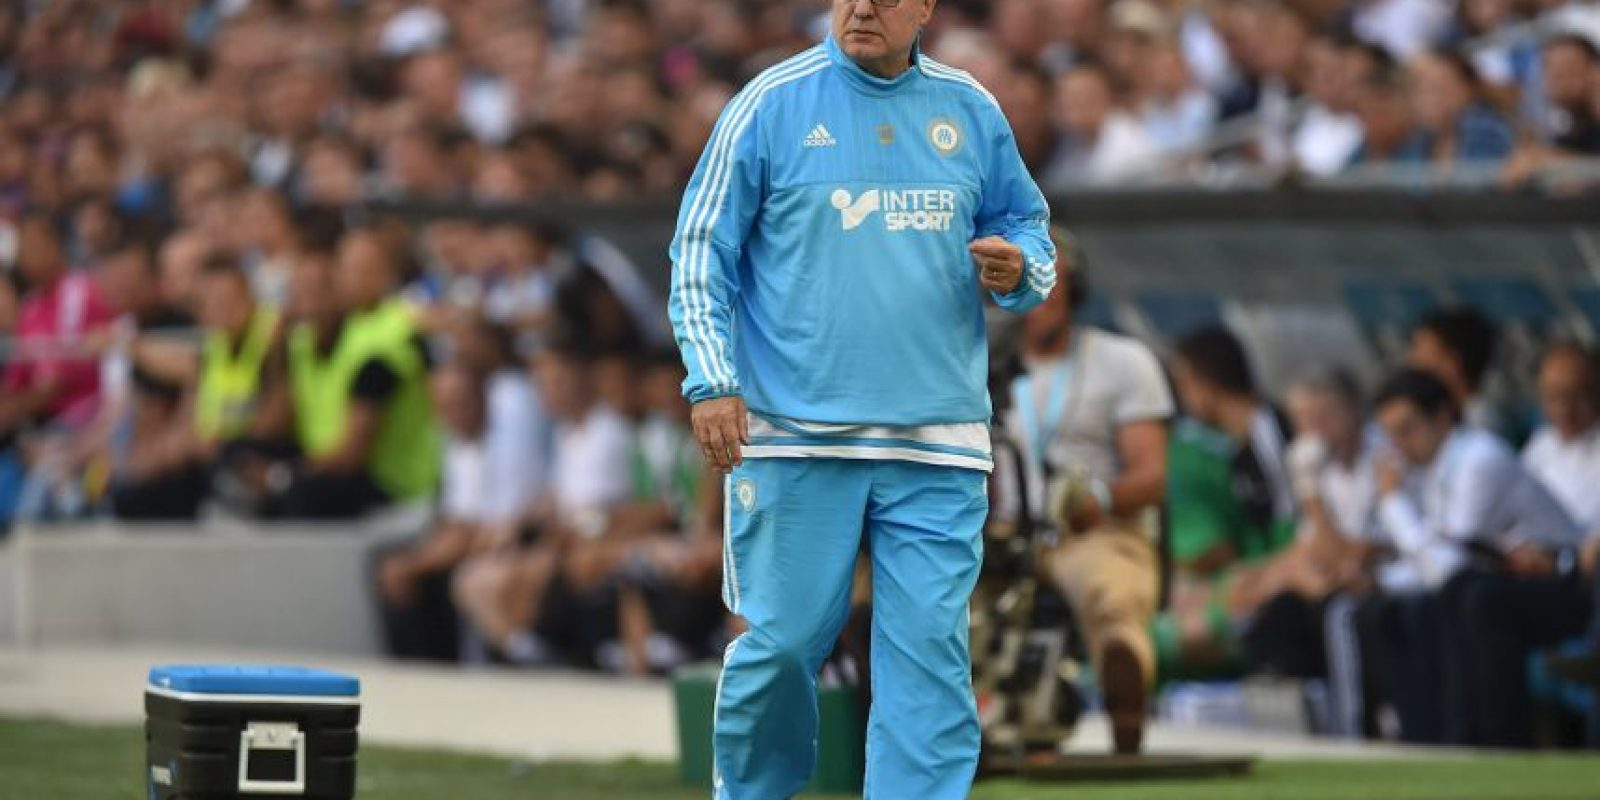 Marcelo Bielsa Foto: Getty Images